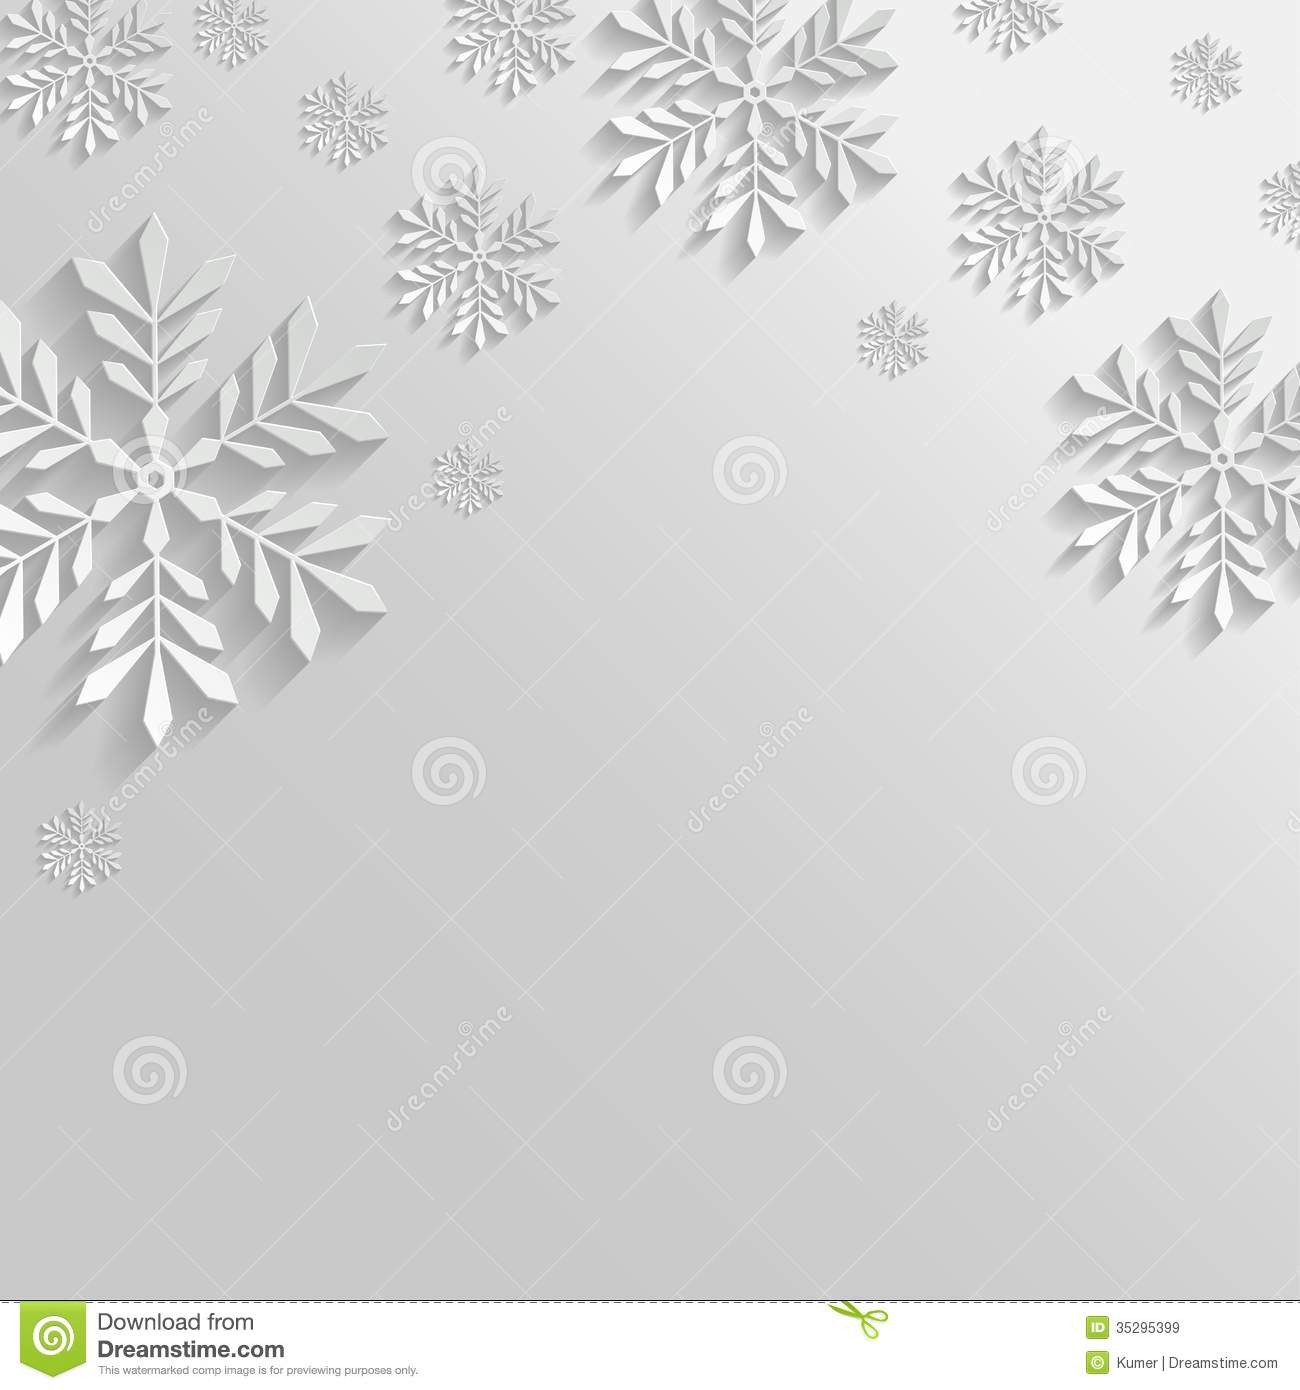 Free Christmas Falling Snow Wallpaper Abstract Background With Snowflakes Stock Vector